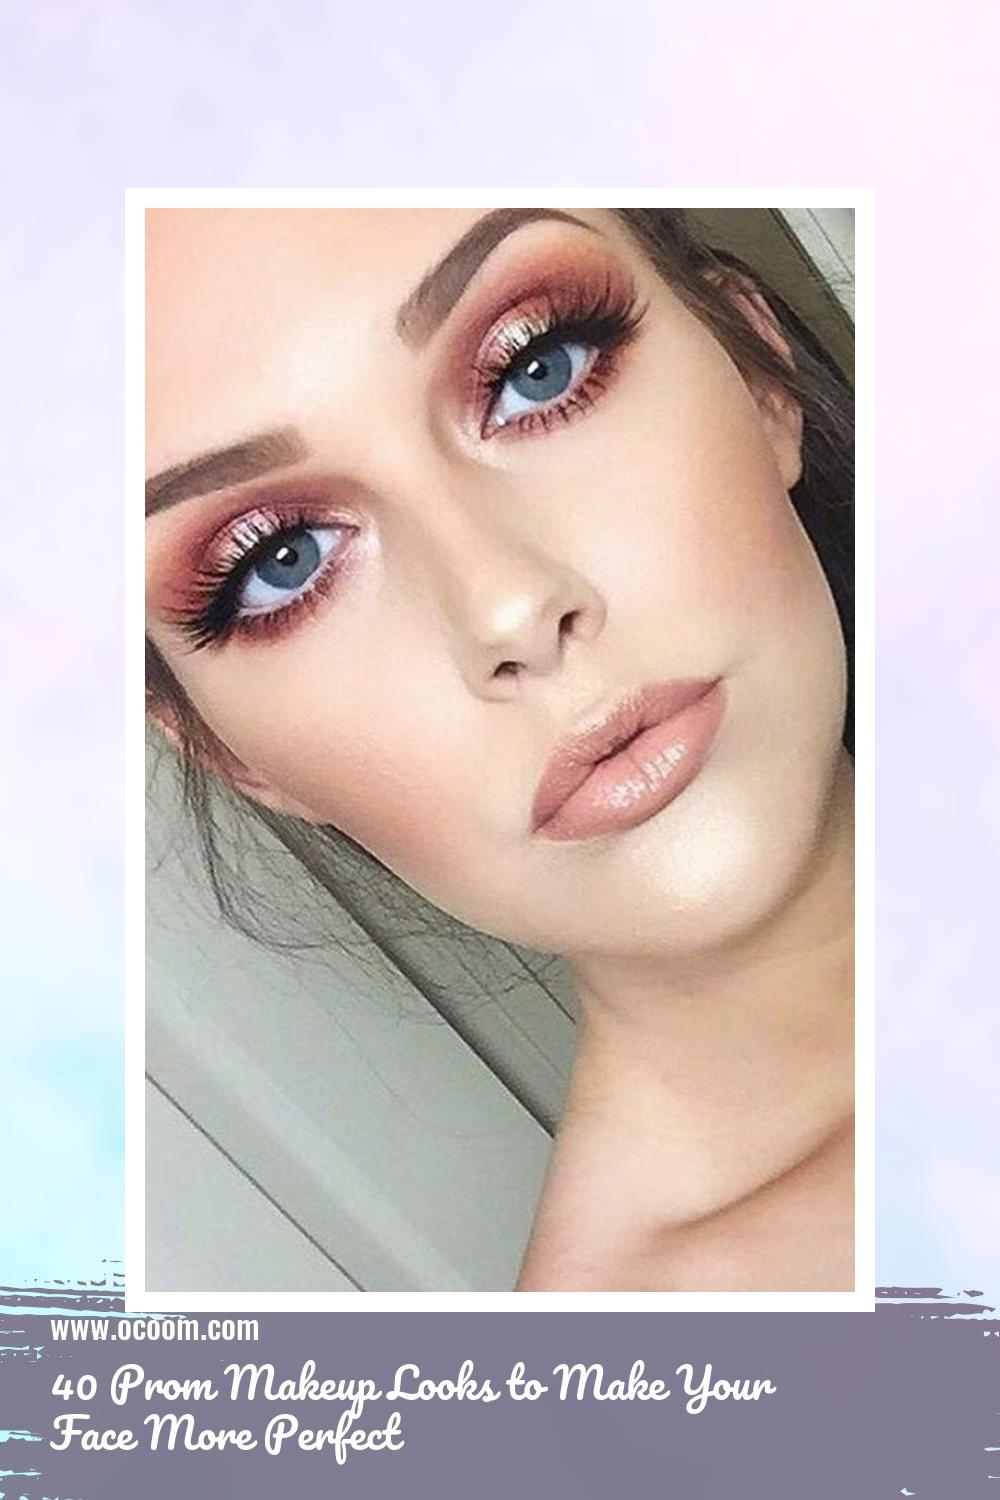 40 Prom Makeup Looks to Make Your Face More Perfect 7